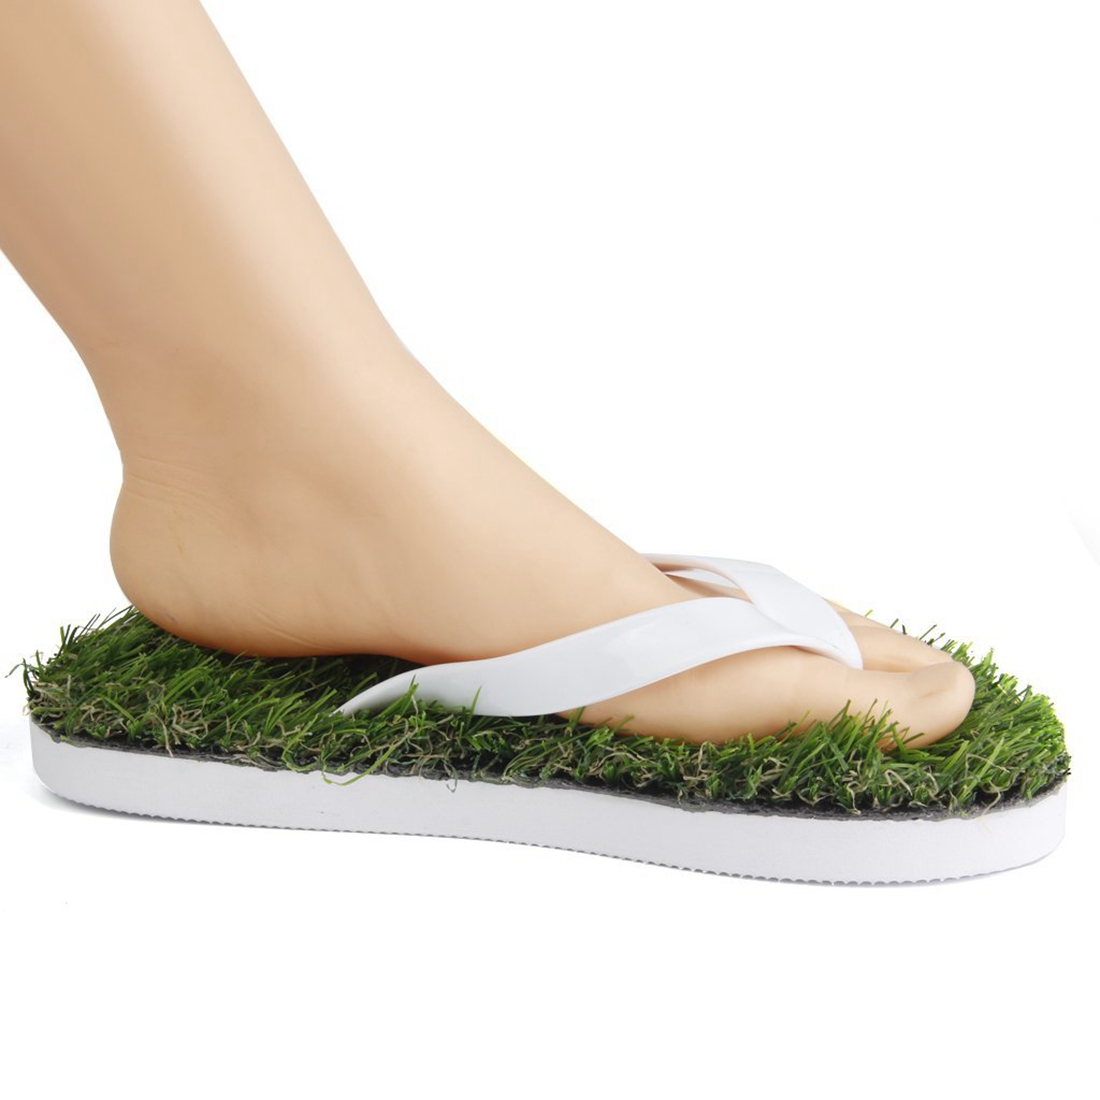 Buy flats grass and get free shipping on AliExpress.com 7107f7c37ffe